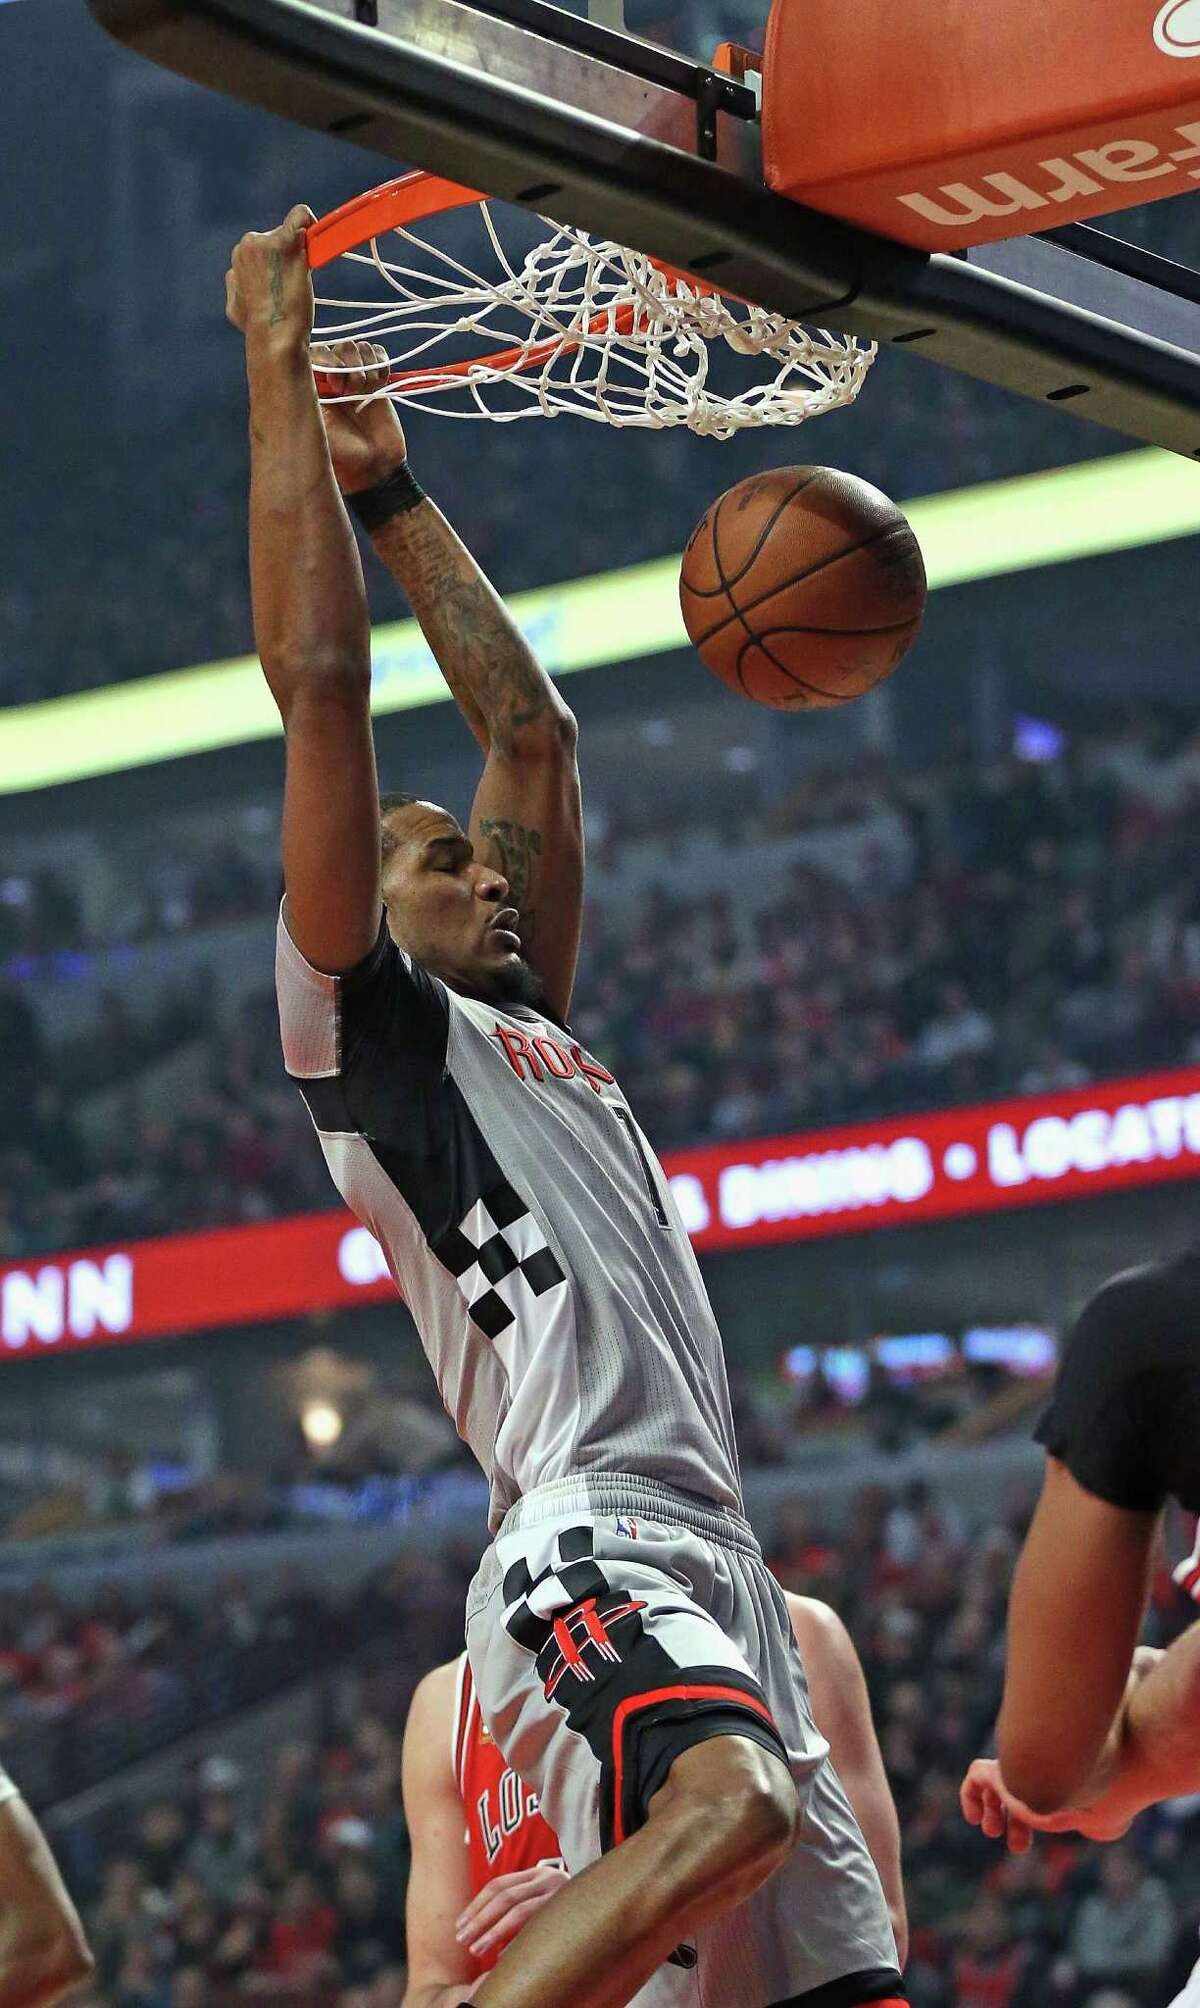 CHICAGO, IL - MARCH 05: Trevor Ariza #1 of the Houston Rockets dunks against the Chicago Bulls at the United Center on March 5, 2016 in Chicago, Illinois. NOTE TO USER: User expressly acknowledges and agrees that, by downloading and or using the photograph, User is consenting to the terms and conditions of the Getty Images License Agreement.